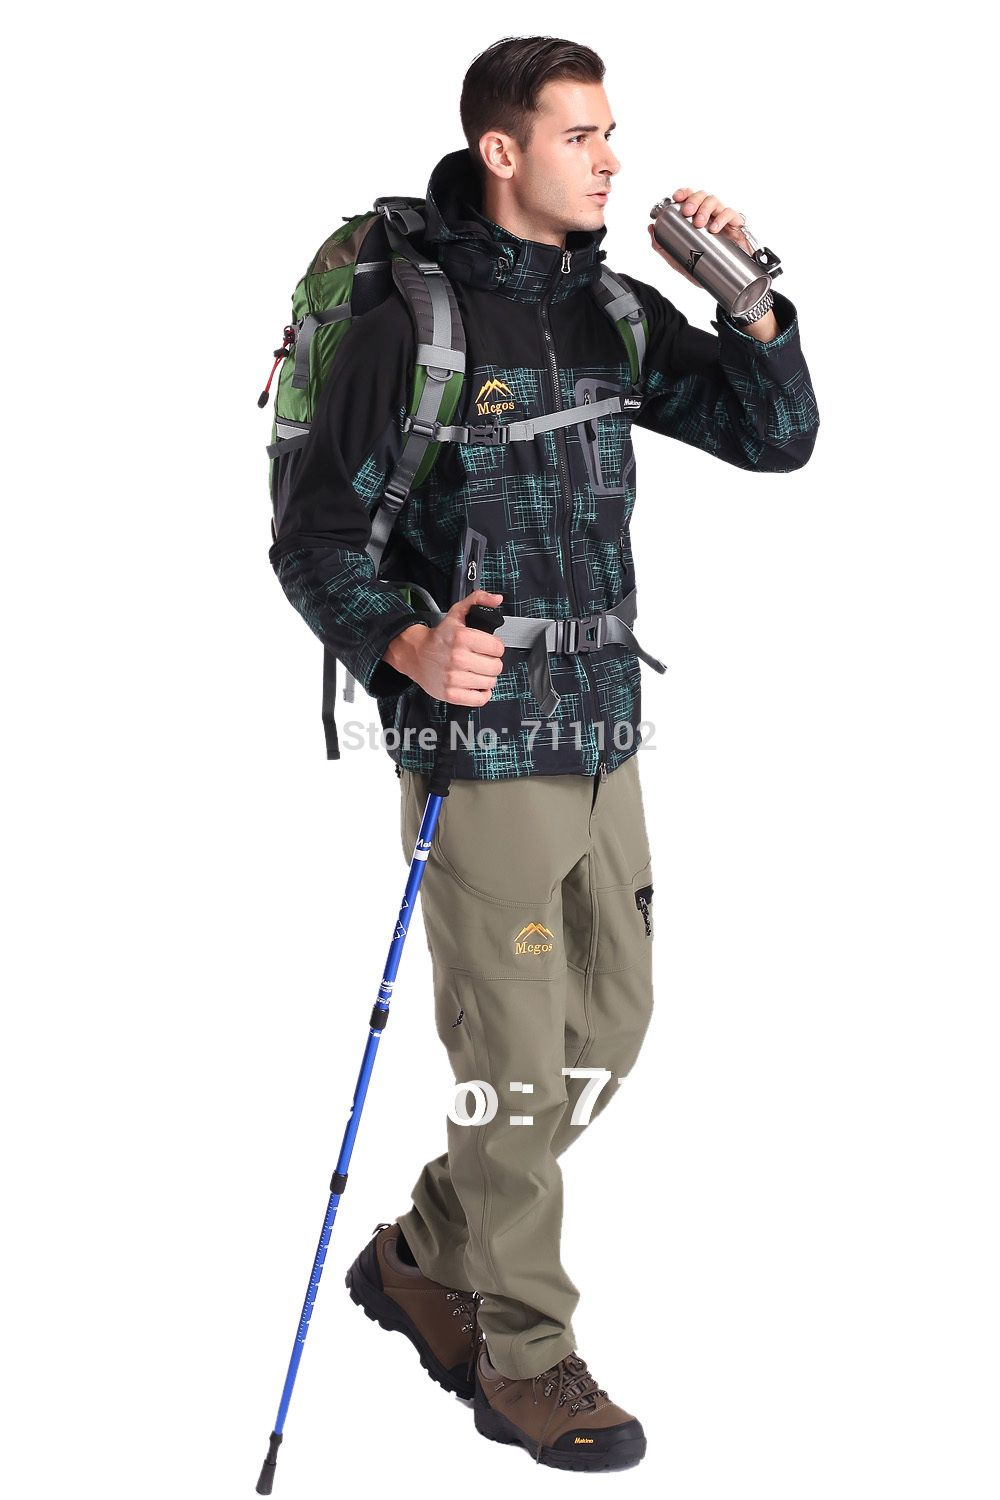 50+ Best Hiking Clothes for Boys ideas | hiking outfit, hiking, clothes